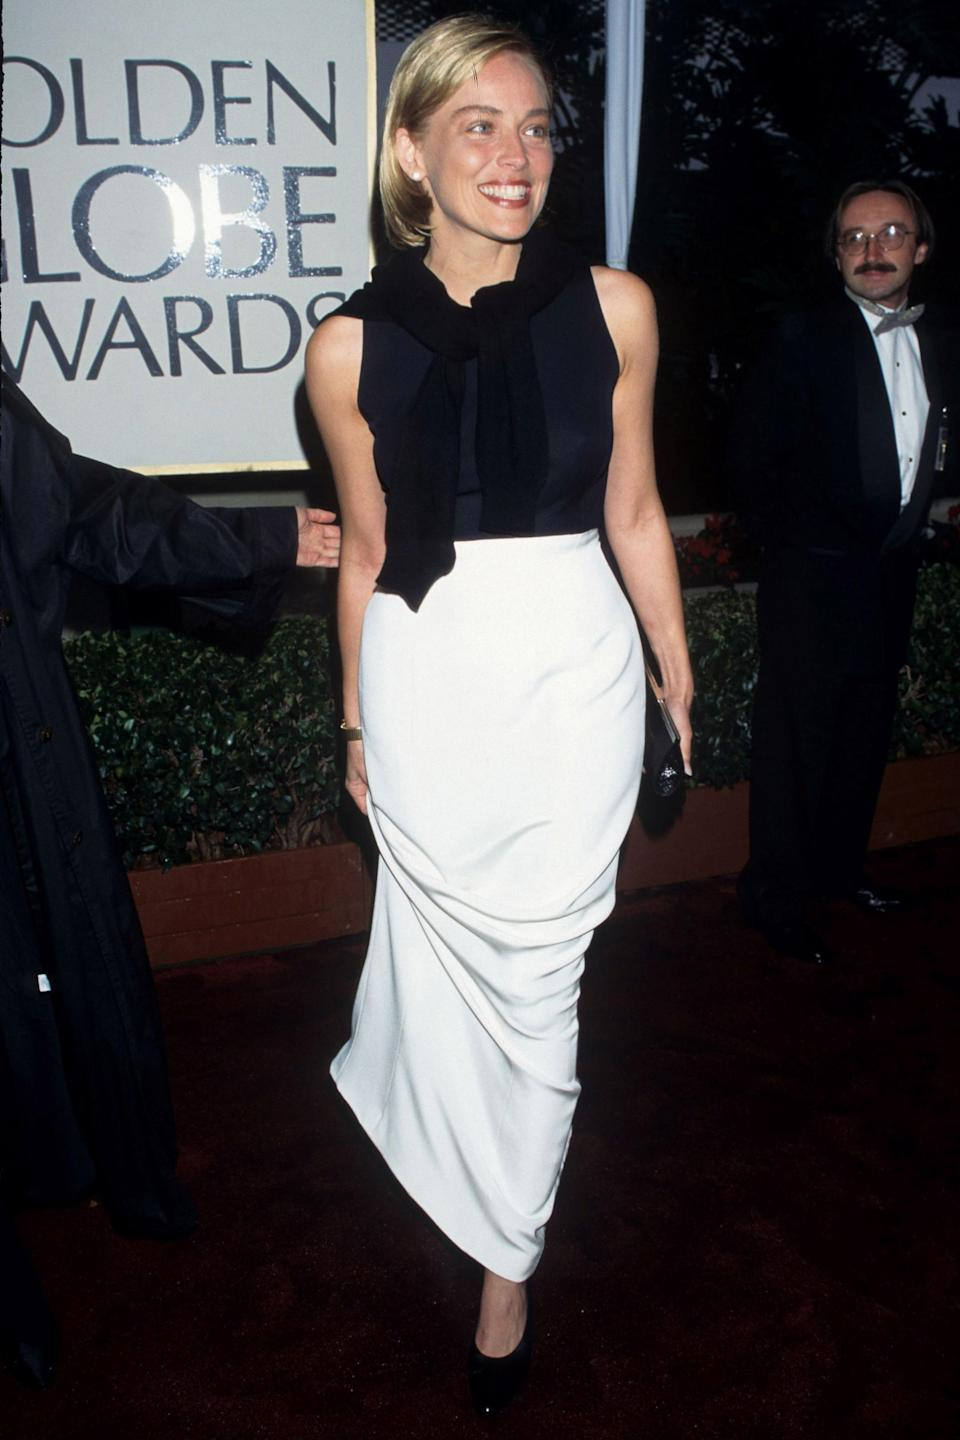 """<strong><h2>1996</h2></strong><br>It's official: Sharon Stone strutting onto the red carpet in this Vera Wang black and white ensemble (sweater around the shoulders included!) is 2019 #stylegoals.<br><br><em>Sharon Stone in Vera Wang.</em><span class=""""copyright"""">Photo: Ke.Mazur/WireImage.</span>"""